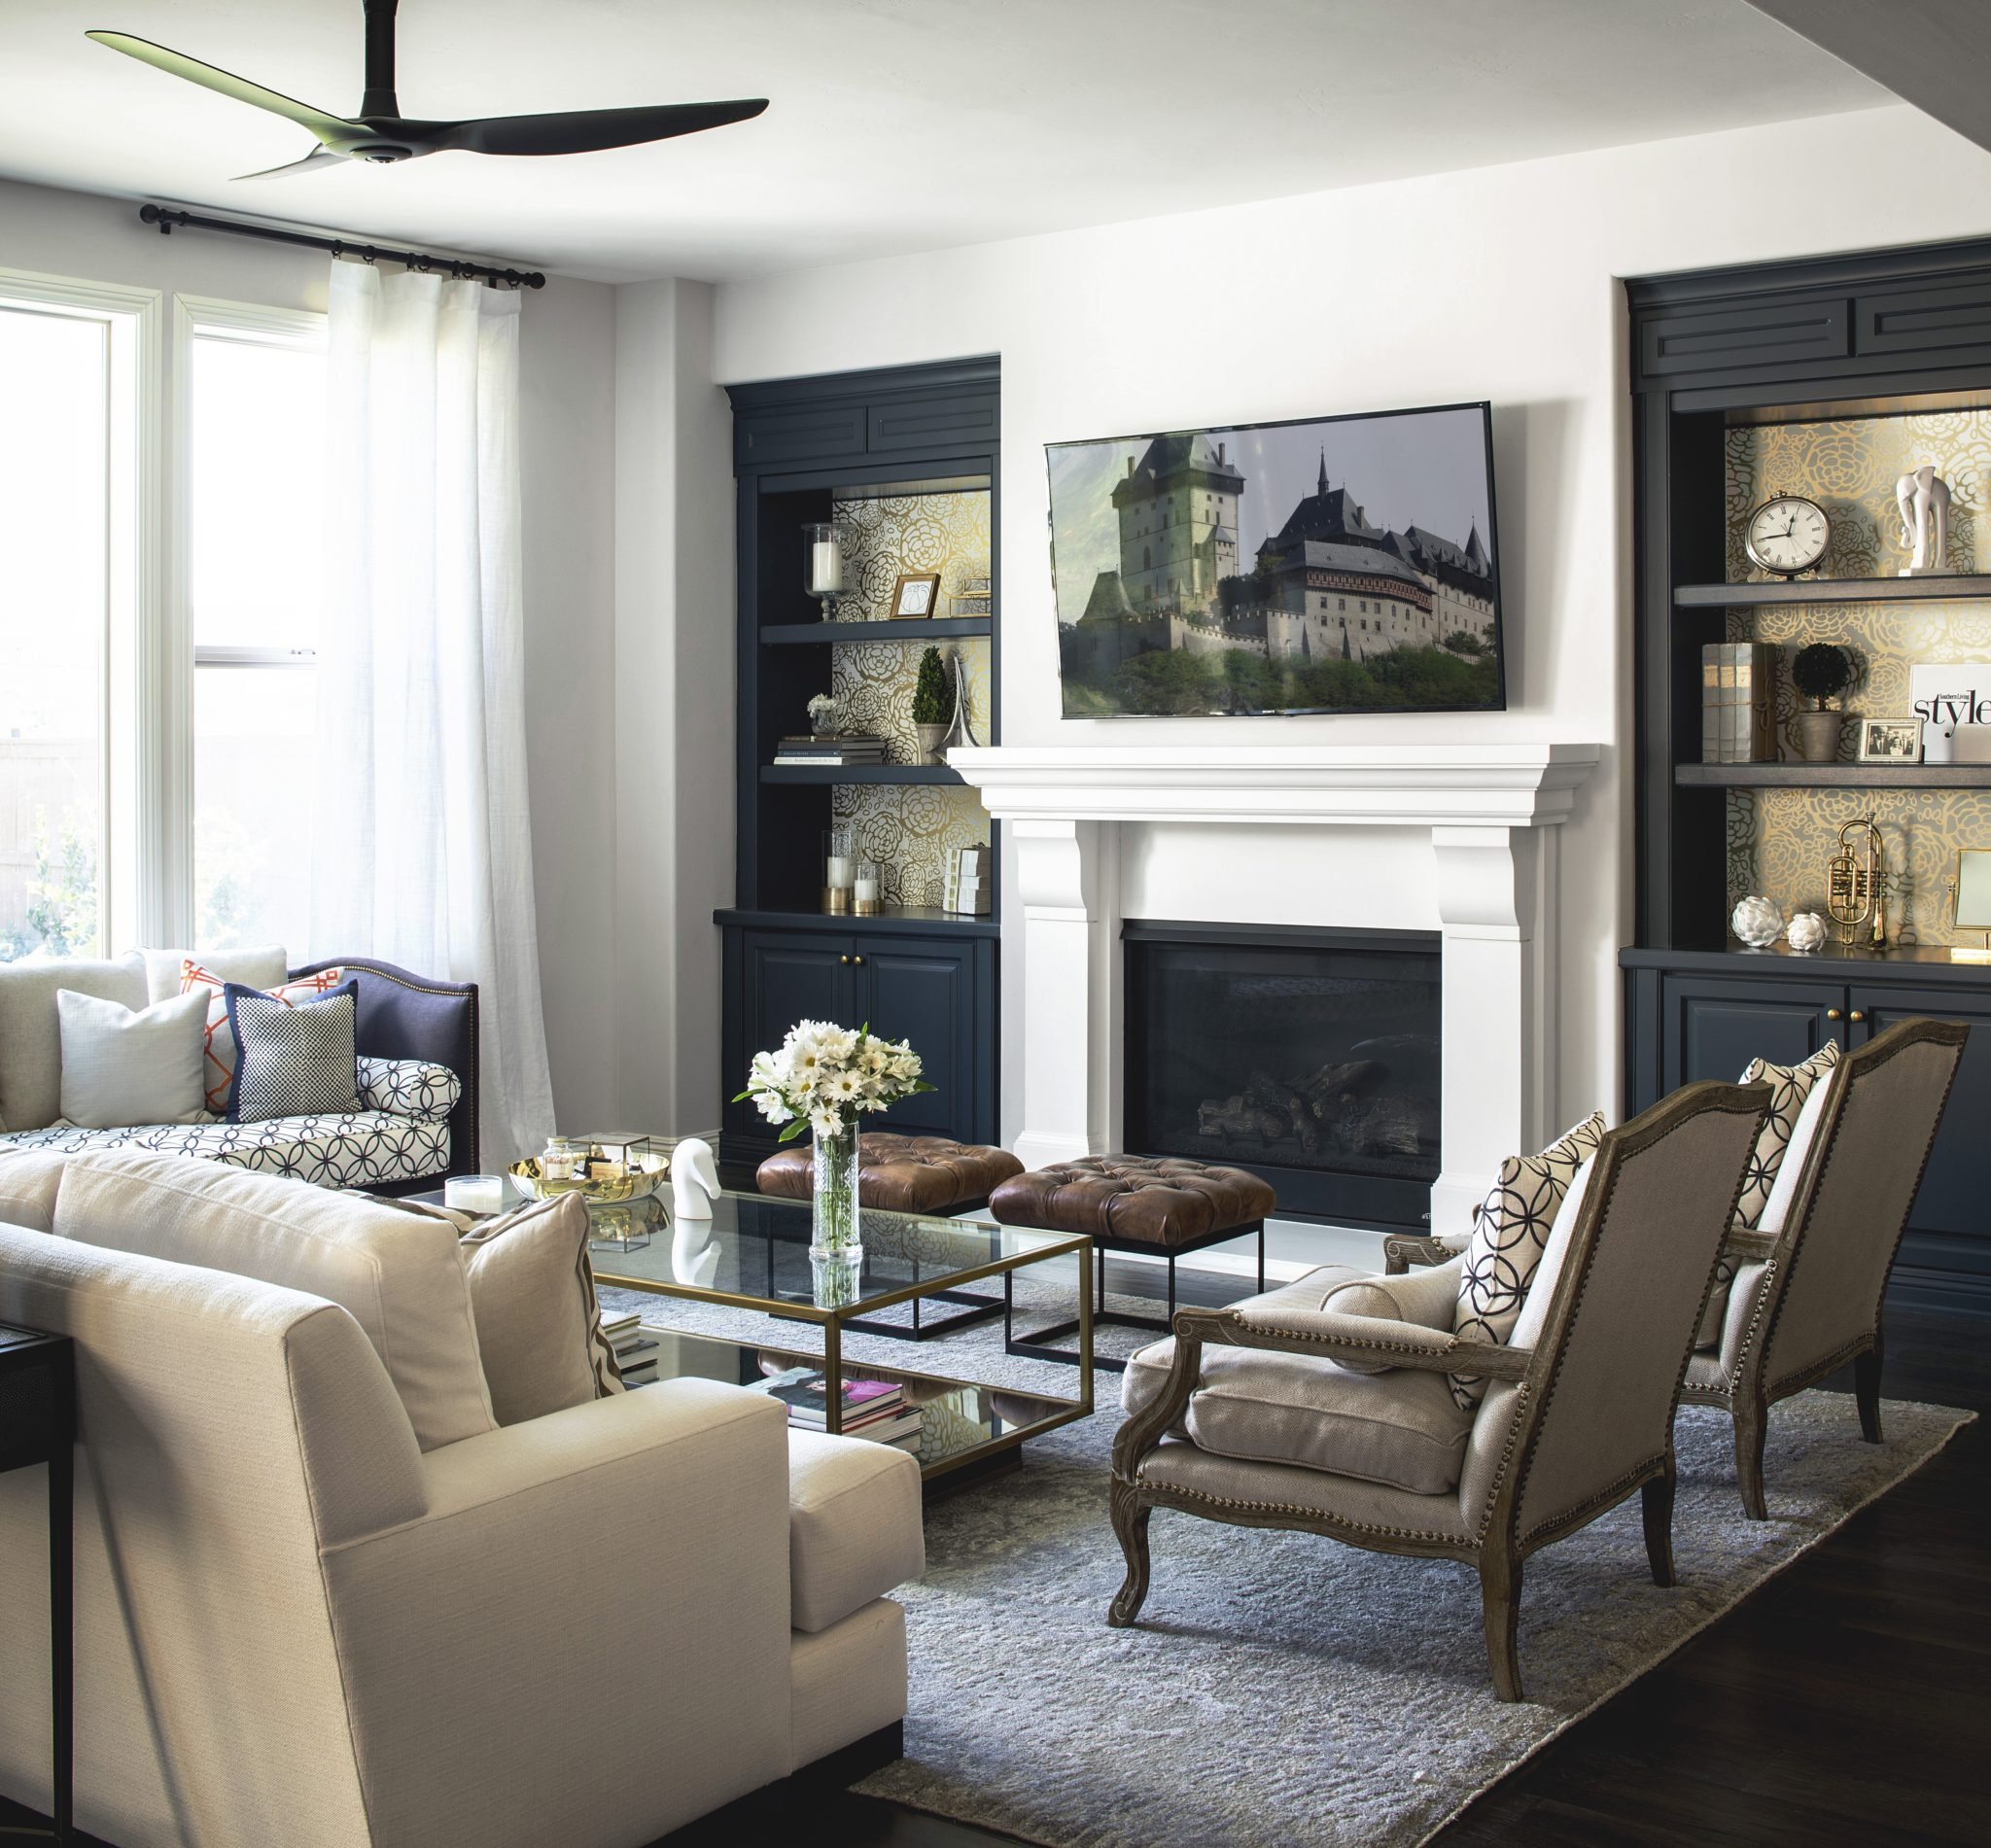 A French-inspired living room by CM Natural Designs